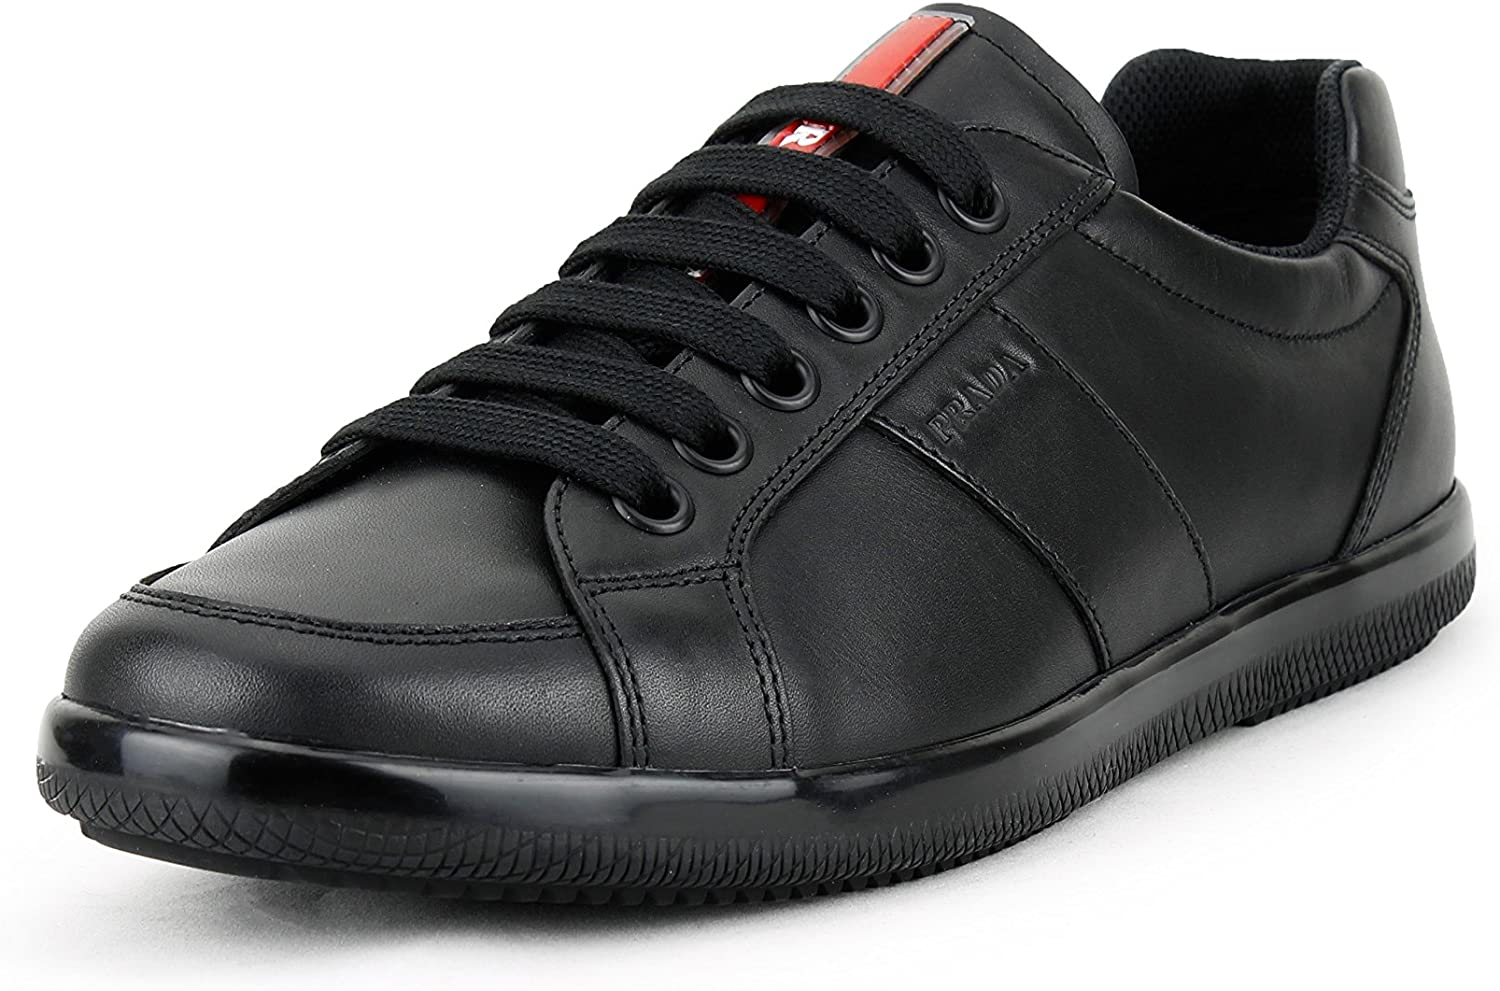 Prada Men's Plume Calf Leather Low-top Trainer Sneaker, Black (black) 4E2845